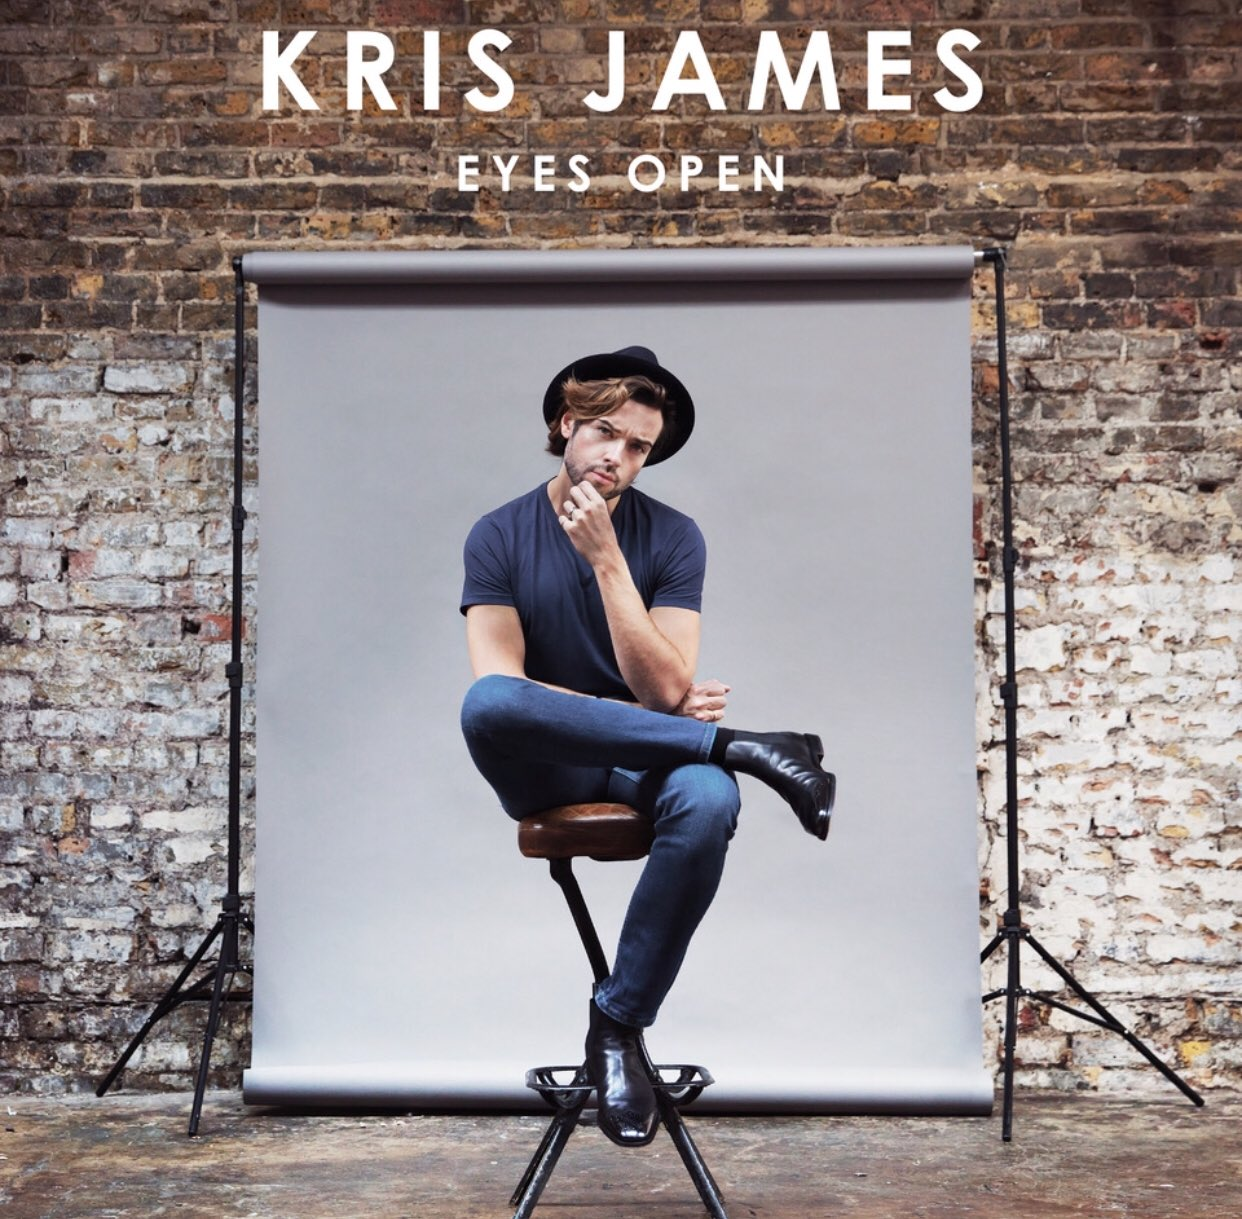 Kris James Eyes Open album cover music week designs